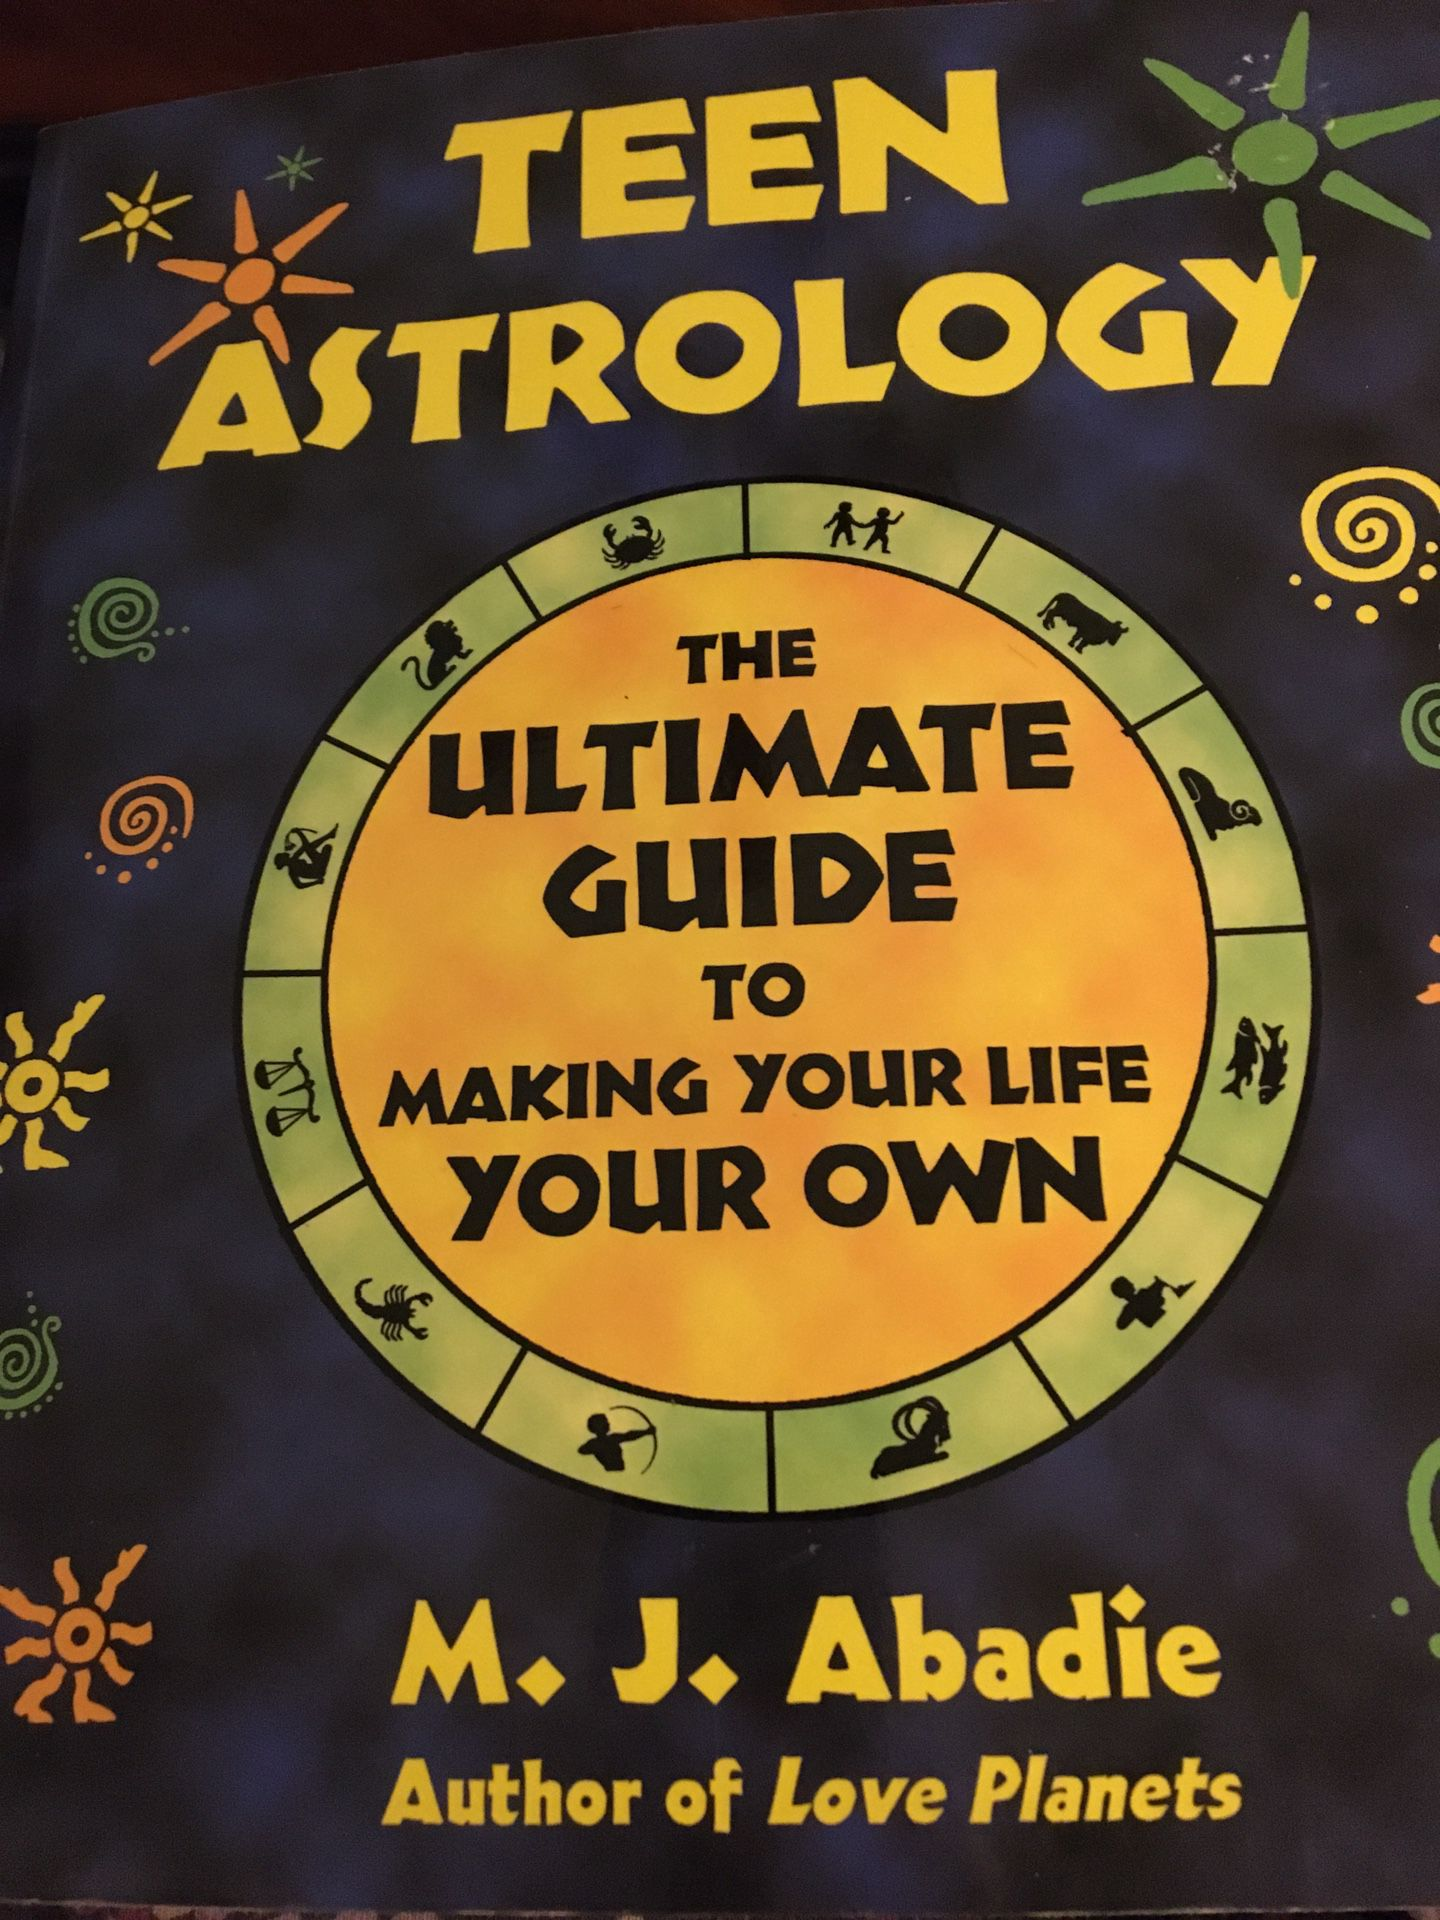 Teen Astrology The Ultimate Guide to Making your Life your Own